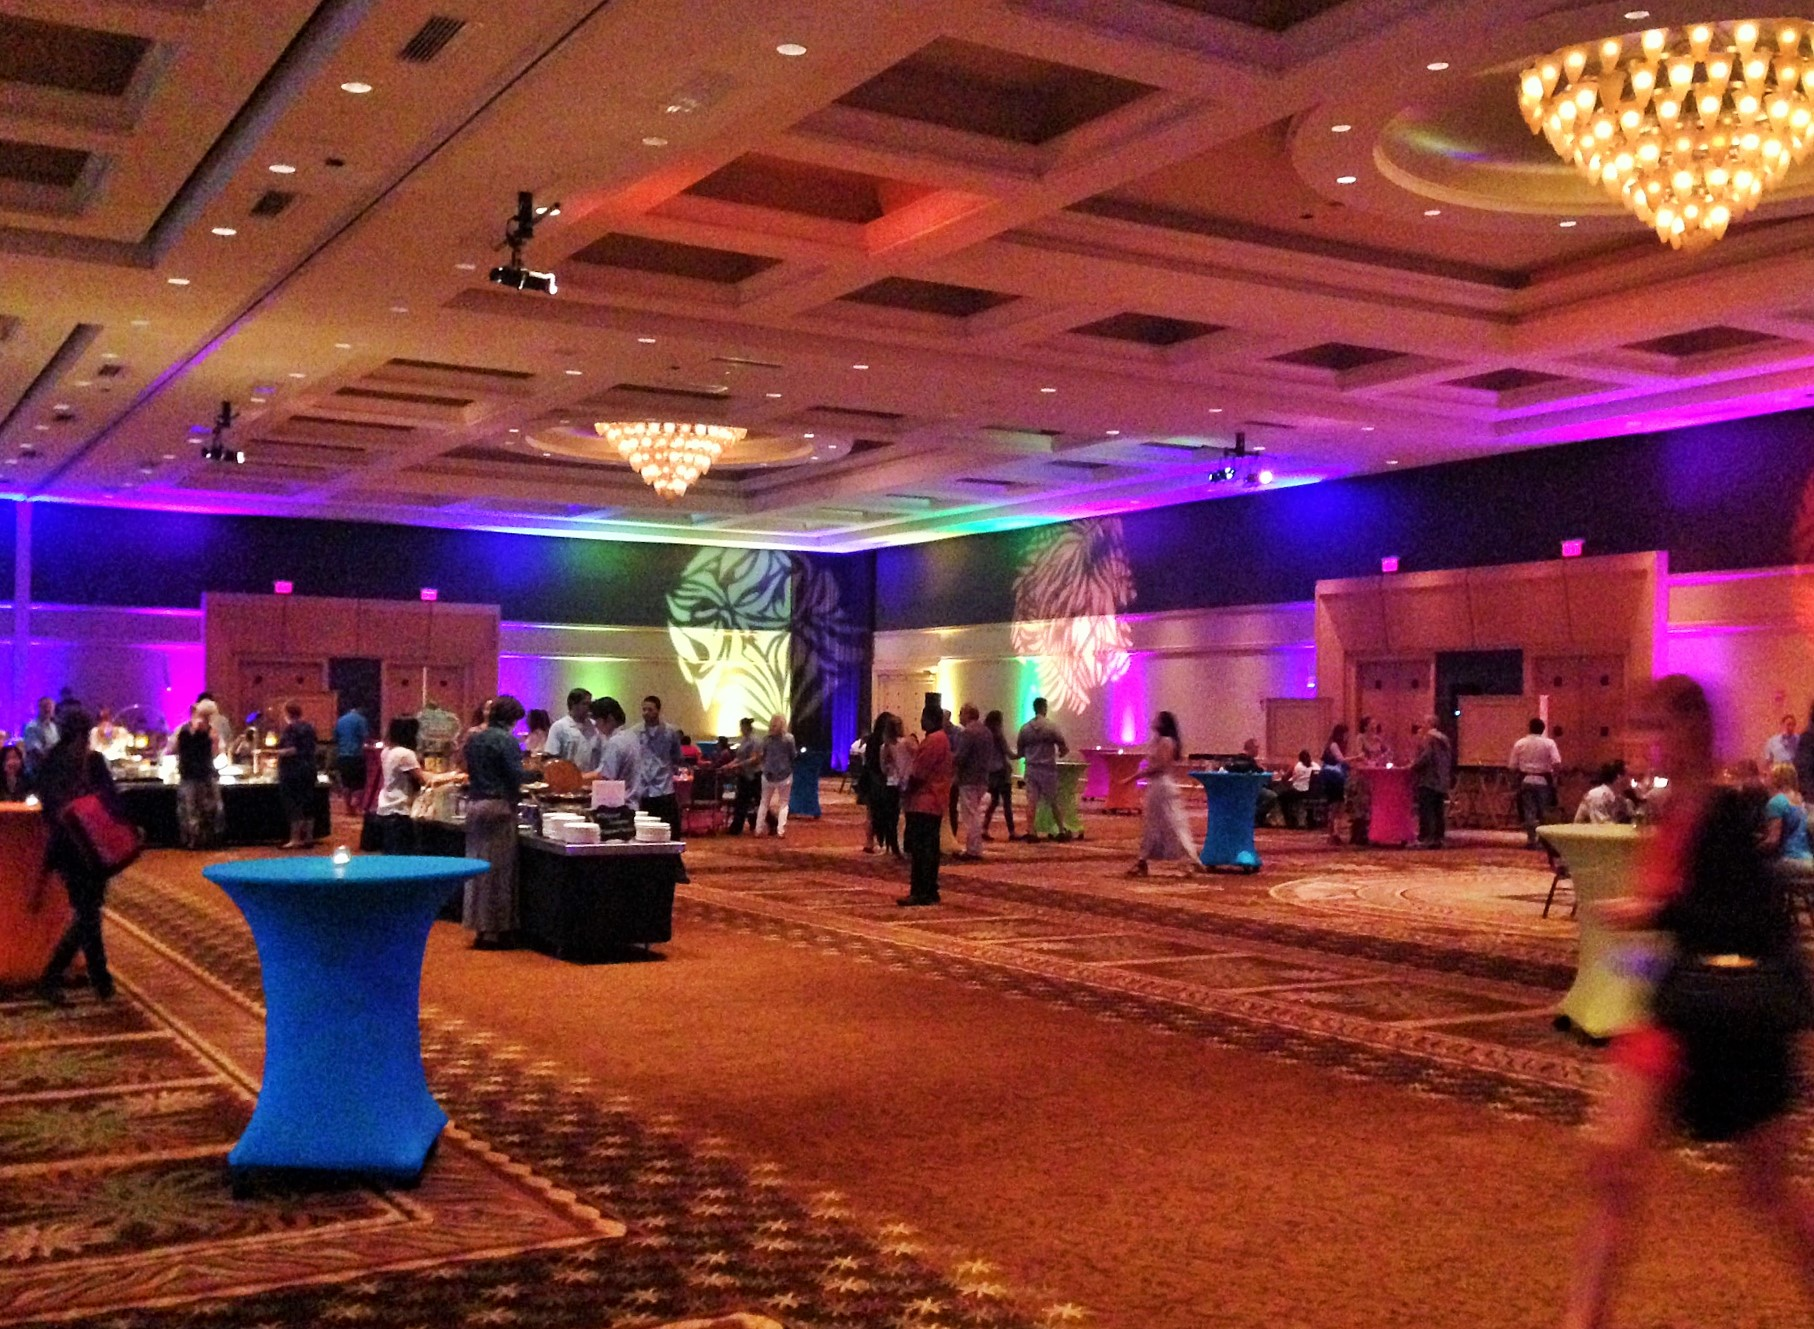 Things started settling in at this beautiful banquet. Welcome to TBEX party Westin Diplomat Resort and Spa